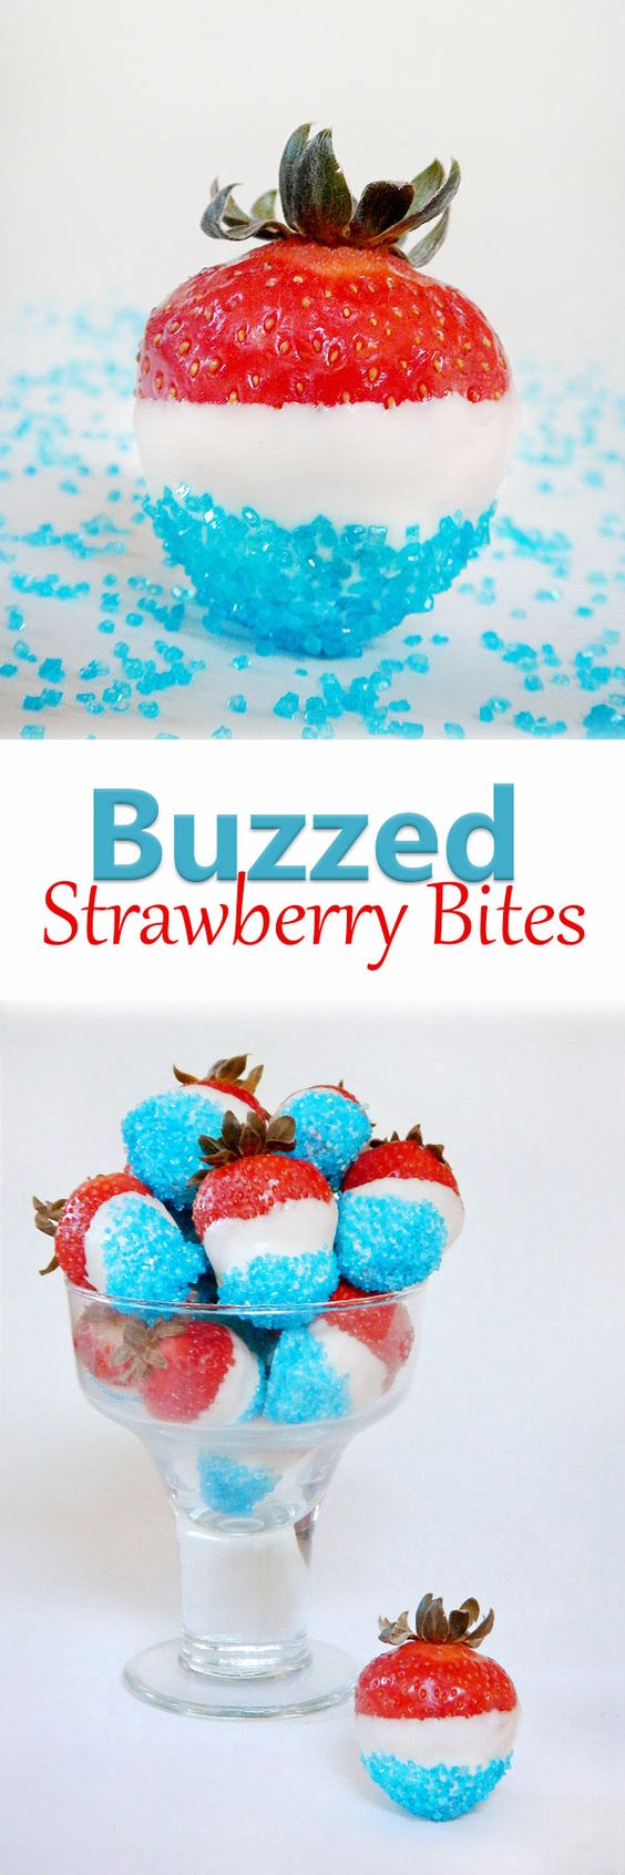 Best Fourth of July Food and Drink Ideas - Buzzed Strawberry Bites - BBQ on the 4th with these Desserts, Recipes and Ideas for Healthy Appetizers, Party Trays, Easy Meals for a Crowd and Fun Drink Ideas